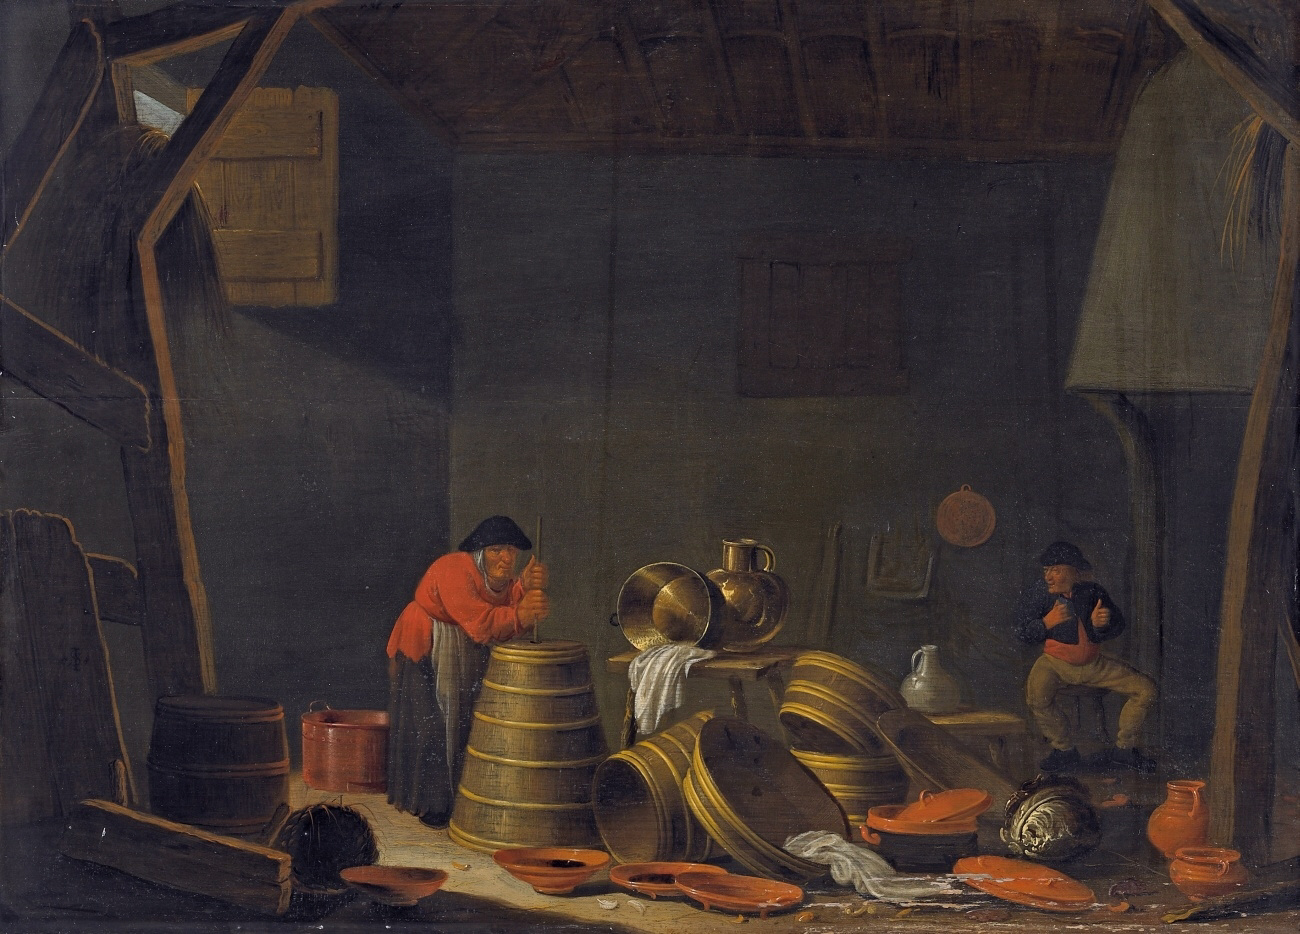 Butter made in an barn, German painting by Jan Spanjaert